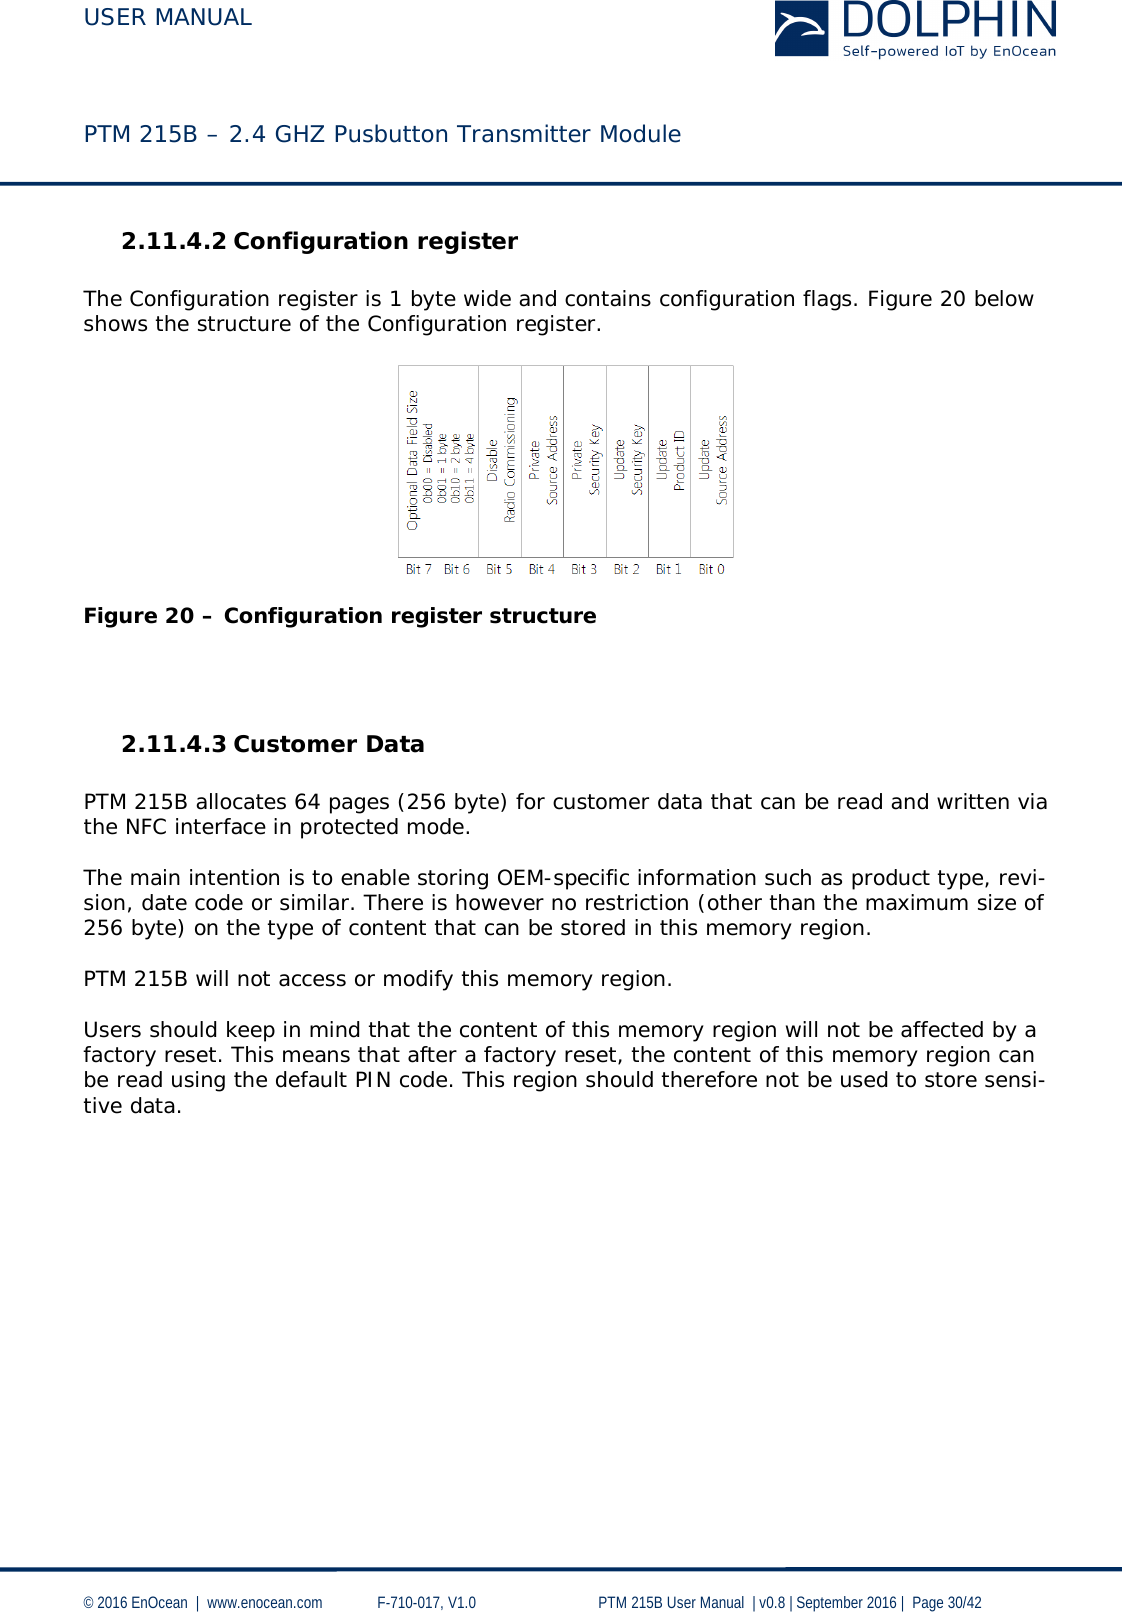 USER MANUAL    PTM 215B – 2.4 GHZ Pusbutton Transmitter Module  © 2016 EnOcean     www.enocean.com   F-710-017, V1.0        PTM 215B User Manual    v0.8   September 2016    Page 30/42  2.11.4.2 Configuration register  The Configuration register is 1 byte wide and contains configuration flags. Figure 20 below shows the structure of the Configuration register.    Figure 20 – Configuration register structure     2.11.4.3 Customer Data  PTM 215B allocates 64 pages (256 byte) for customer data that can be read and written via the NFC interface in protected mode.  The main intention is to enable storing OEM-specific information such as product type, revi-sion, date code or similar. There is however no restriction (other than the maximum size of 256 byte) on the type of content that can be stored in this memory region.   PTM 215B will not access or modify this memory region.   Users should keep in mind that the content of this memory region will not be affected by a factory reset. This means that after a factory reset, the content of this memory region can be read using the default PIN code. This region should therefore not be used to store sensi-tive data.